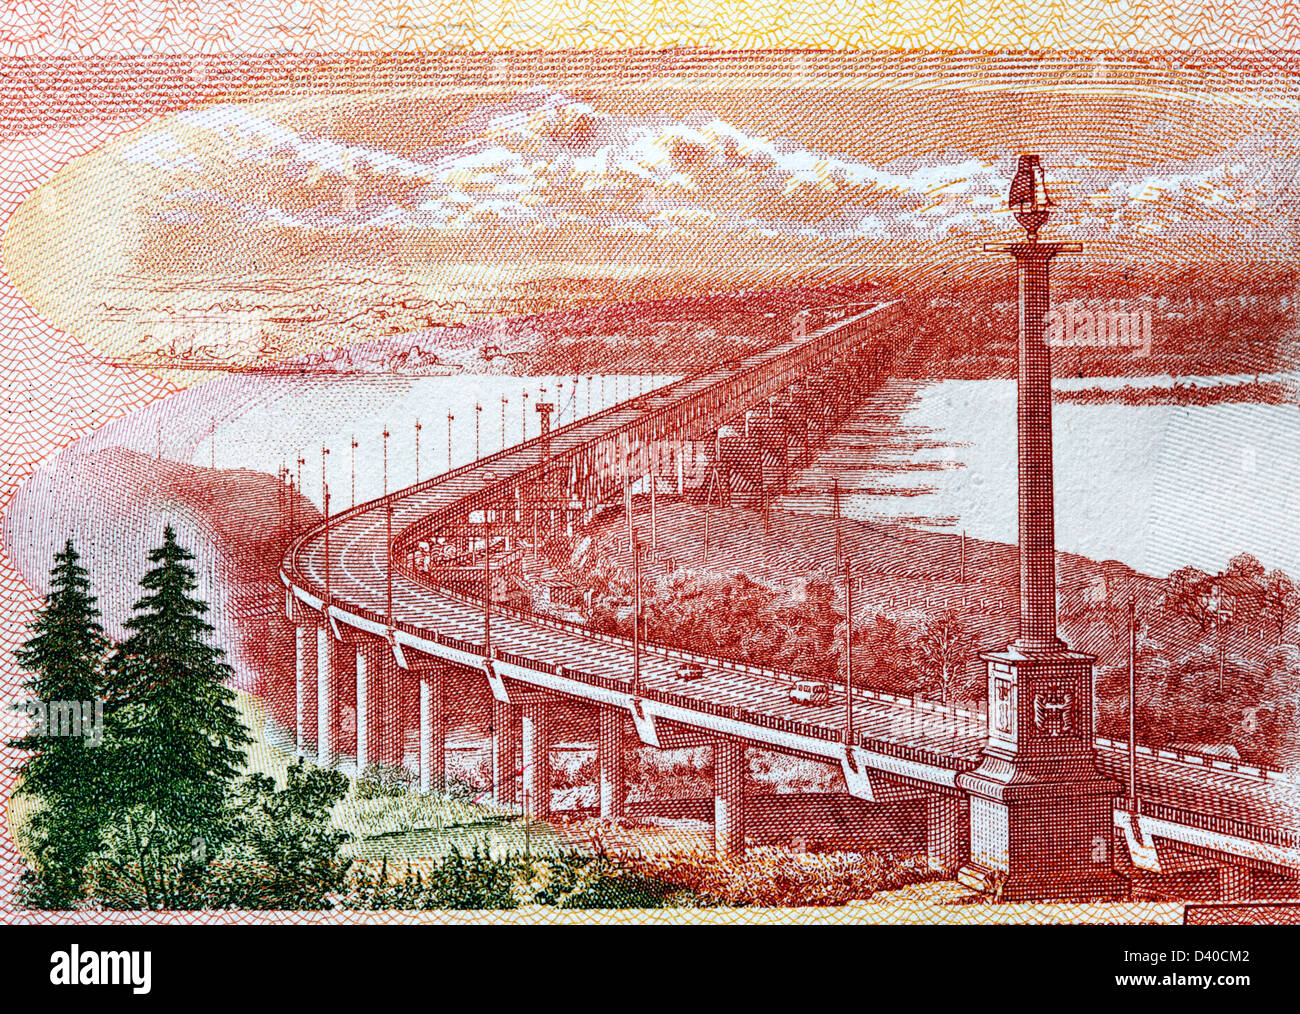 Khabarovsk Bridge over the Amur river from 5000 Rubles banknote, Russia, 2010 - Stock Image